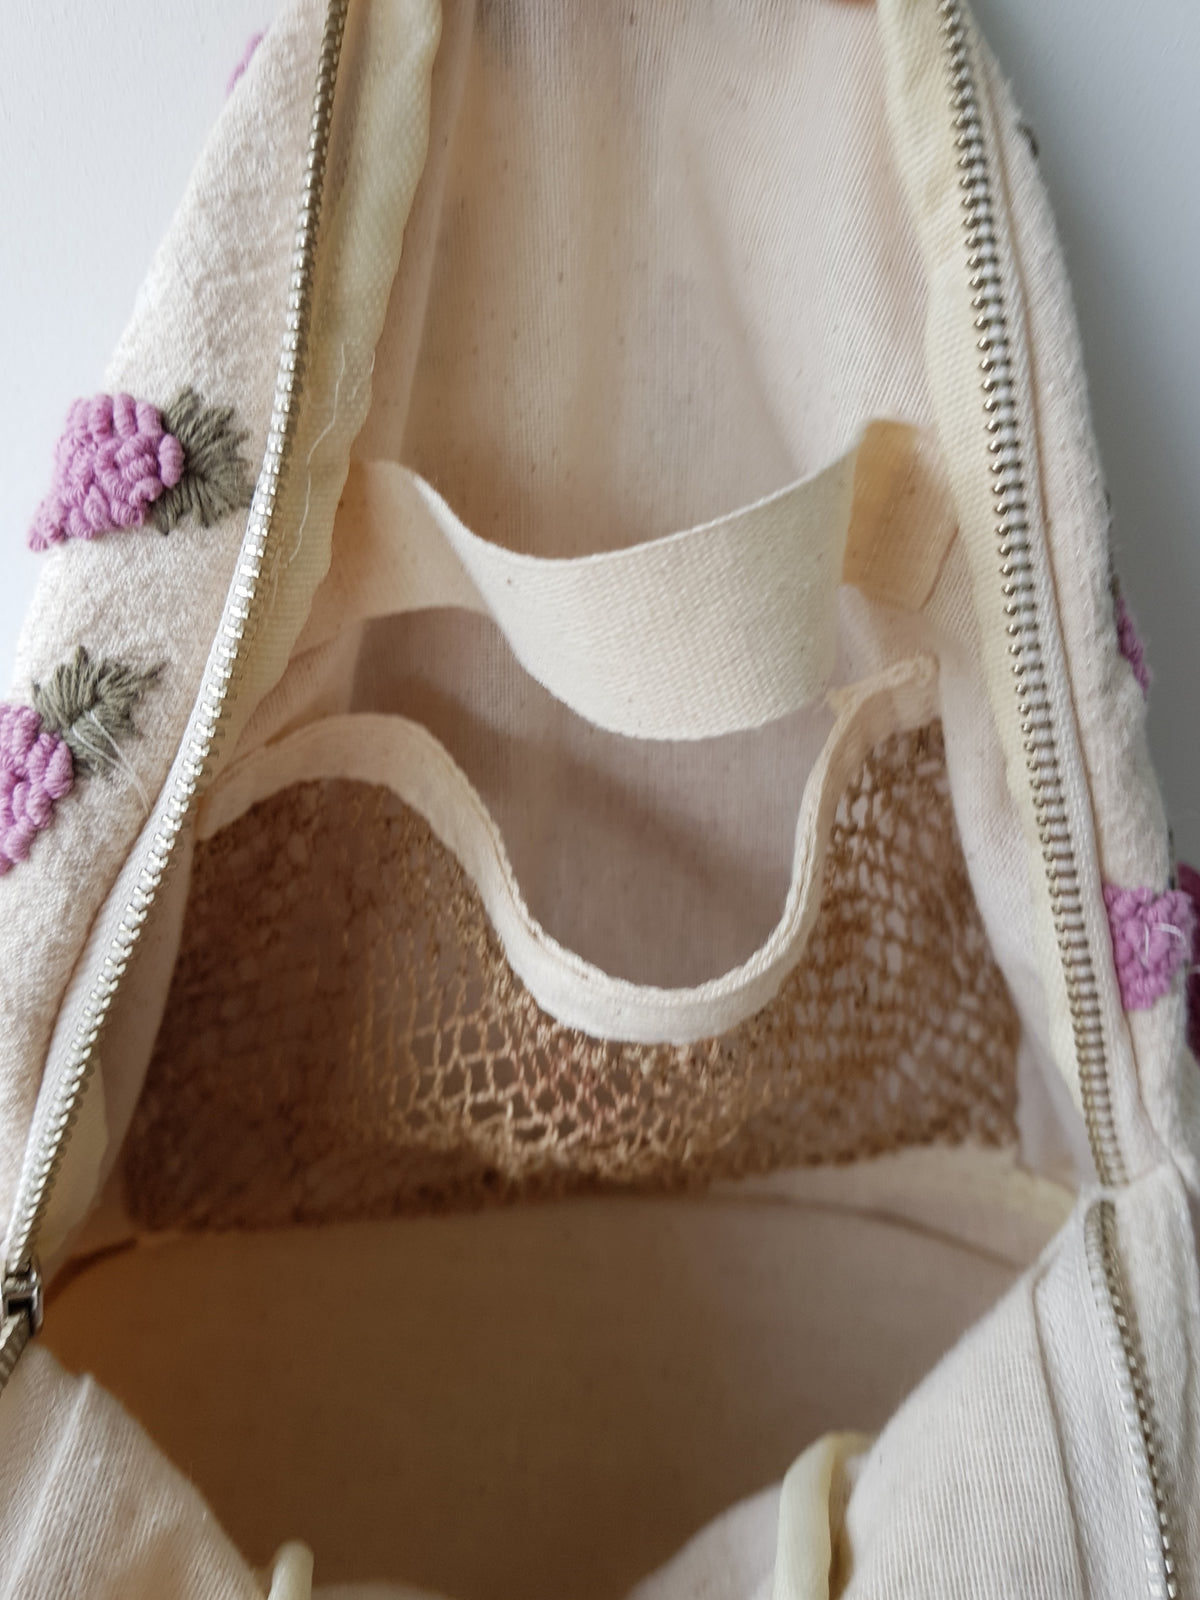 Nami Hand Embroidered Bagpack (White fabric w Purple stitches)